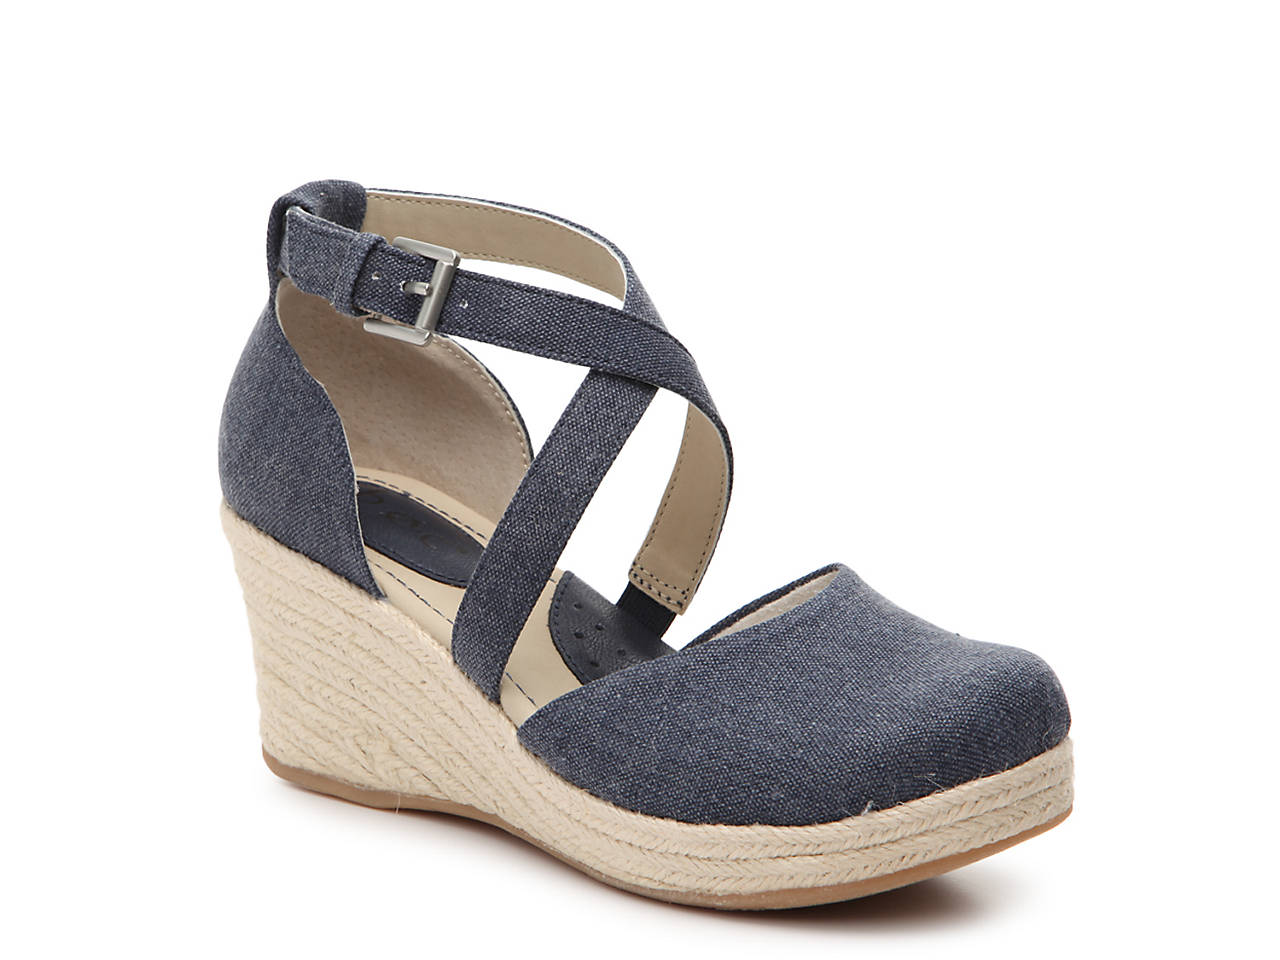 031caf14875d b.o.c Bree Espadrille Wedge Pump Women s Shoes